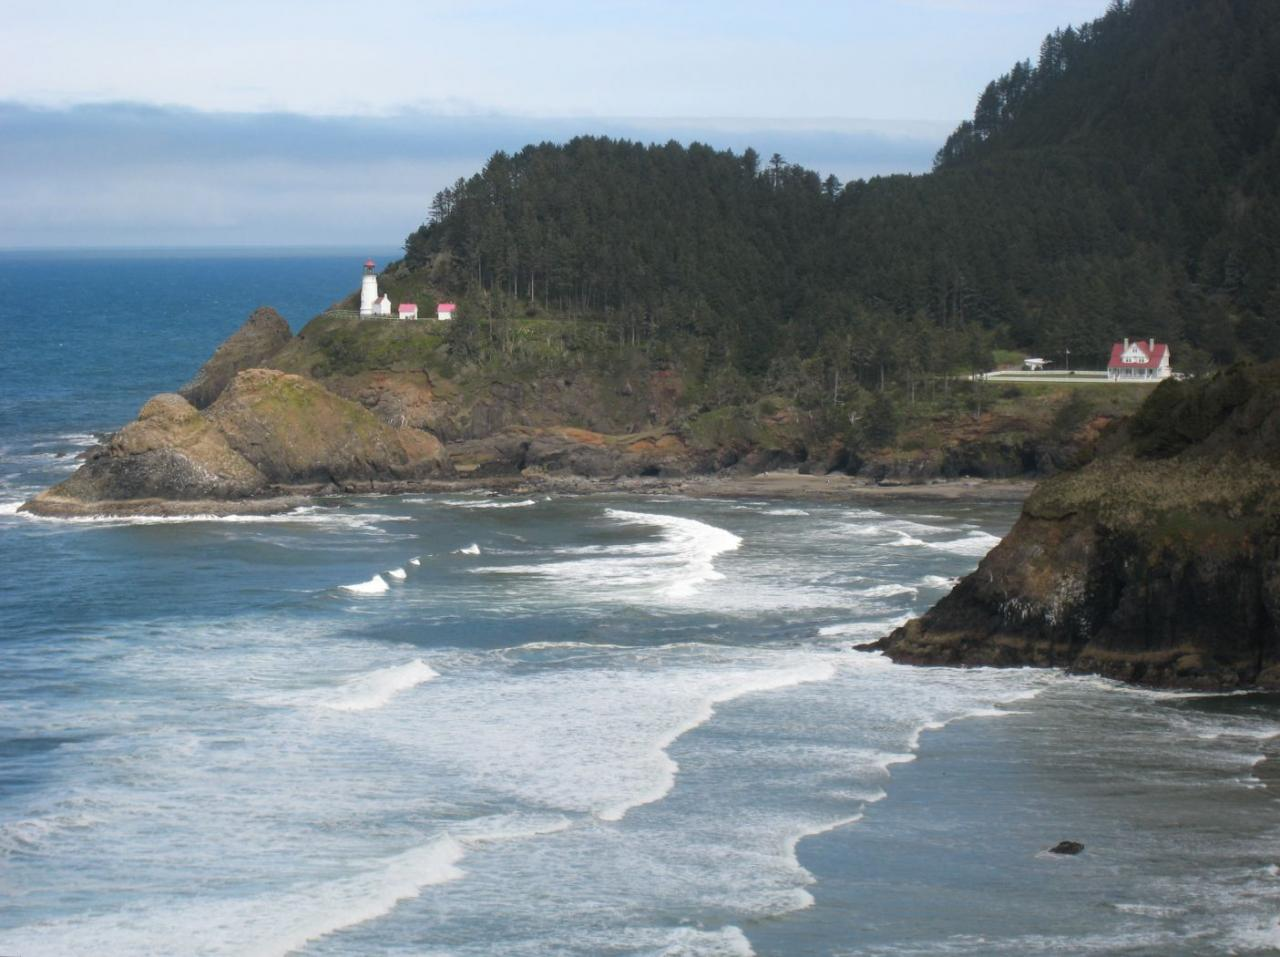 View of Heceta Head, the lighthouse, lighthouse  keepers residence (bed and breakfast), beach  and Devils Elbow.